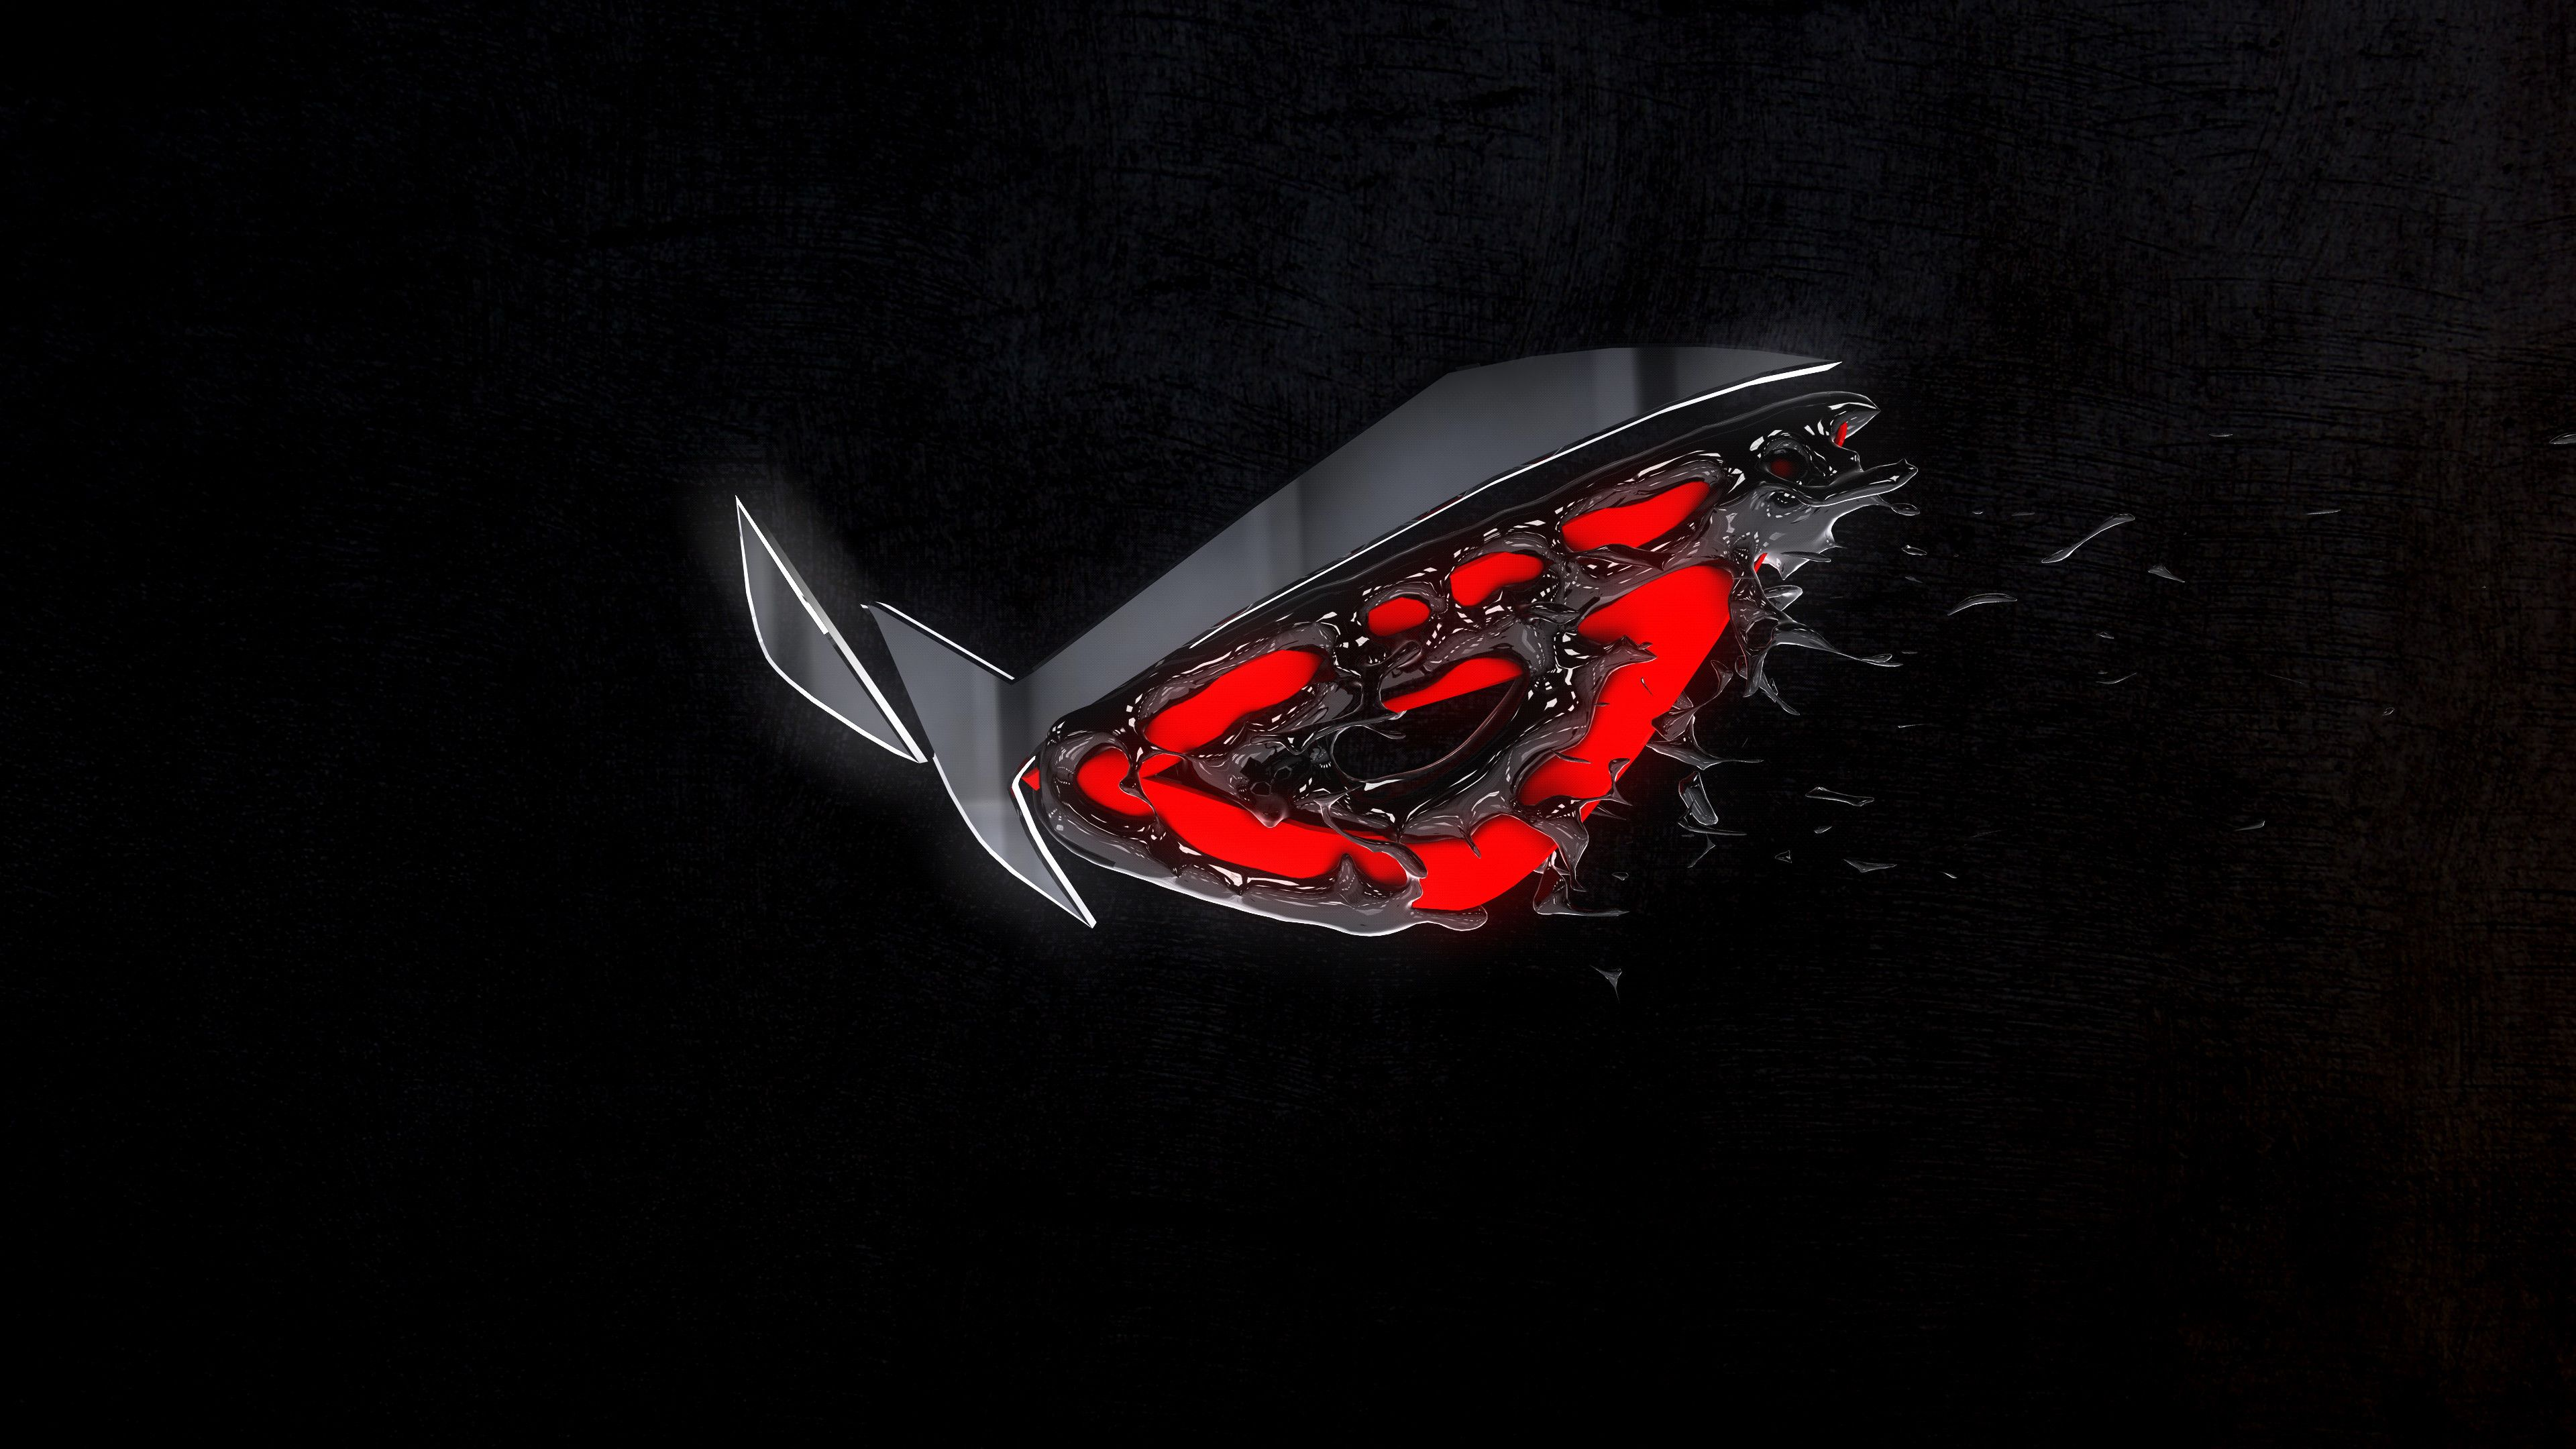 3840x2160 Image For Asus Rog 4k Ultra Hd Wallpaper Gaming Wallpapers Hd Wallpapers For Pc Uhd Wallpaper